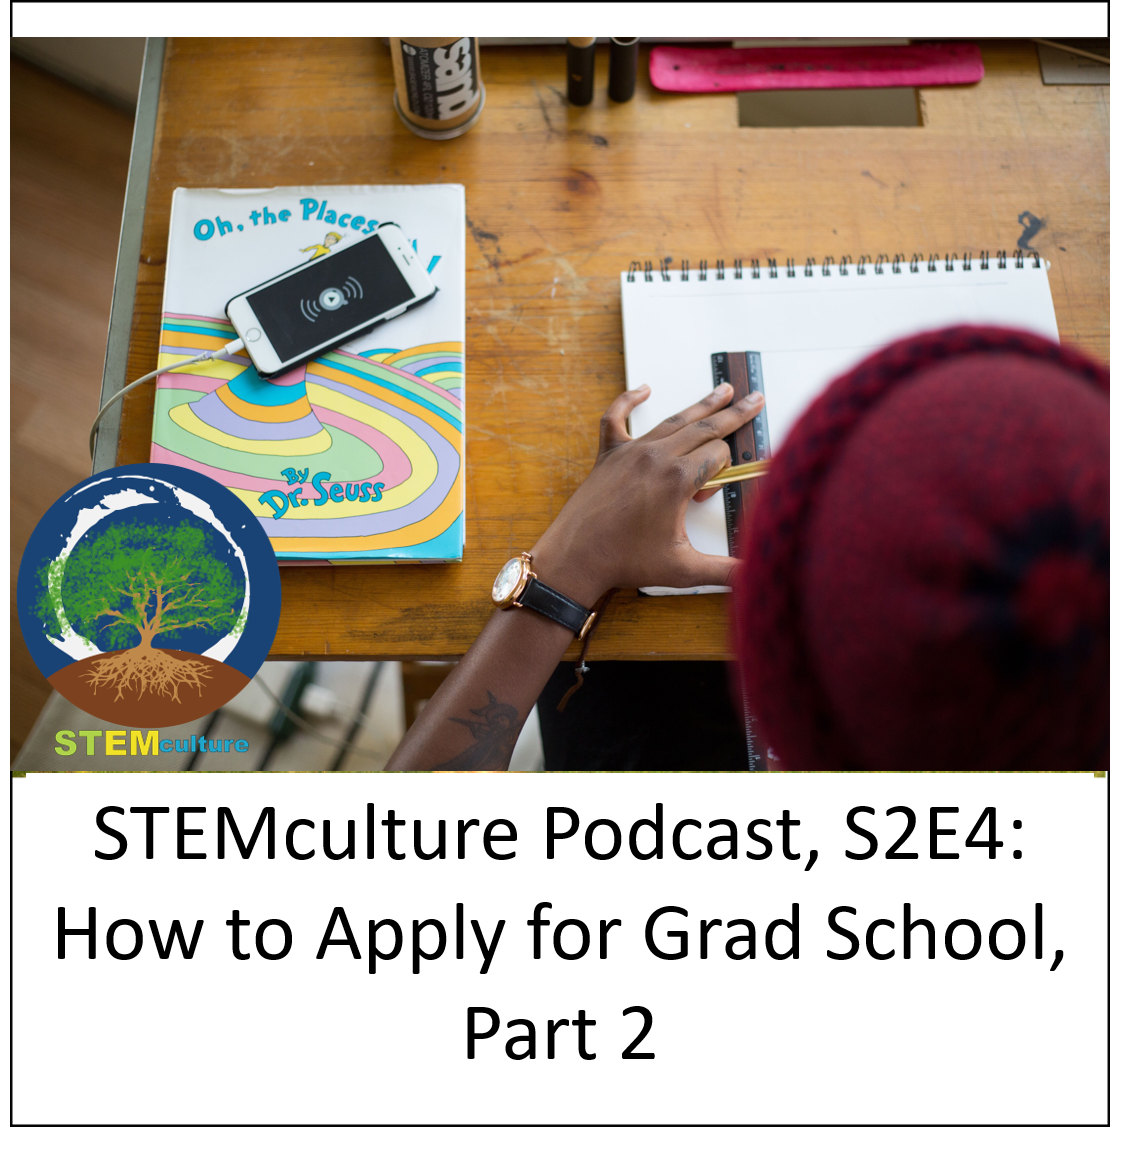 S2E4, Back to School series: ''How to Apply for Grad School, Part 2''